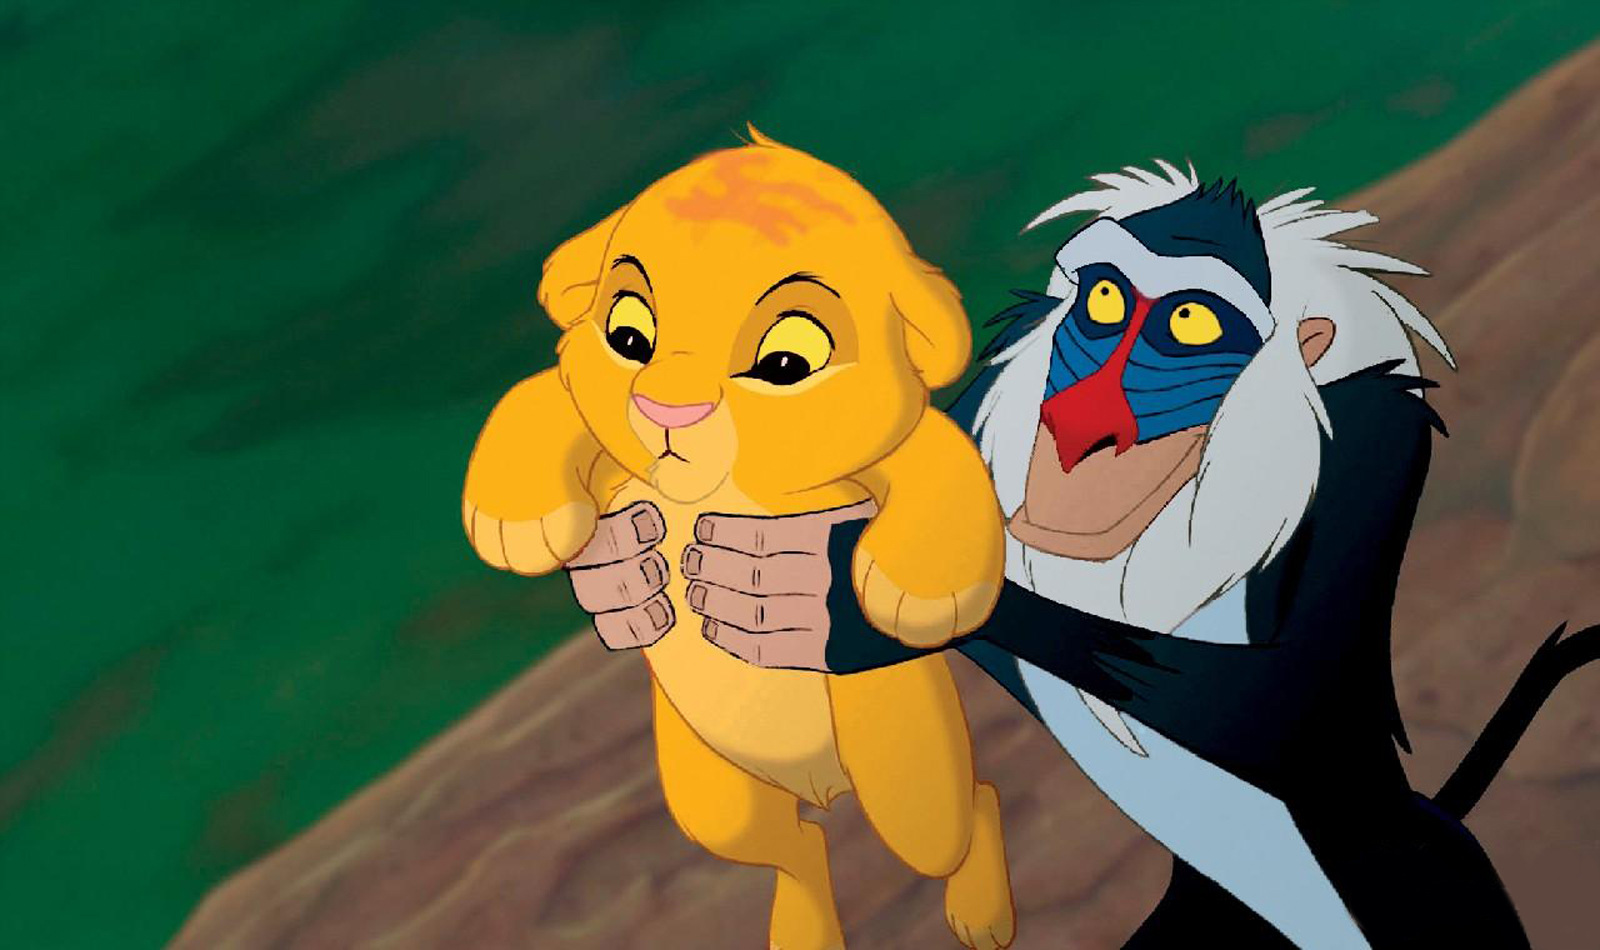 simba the lion king and other characters hd wallpapers